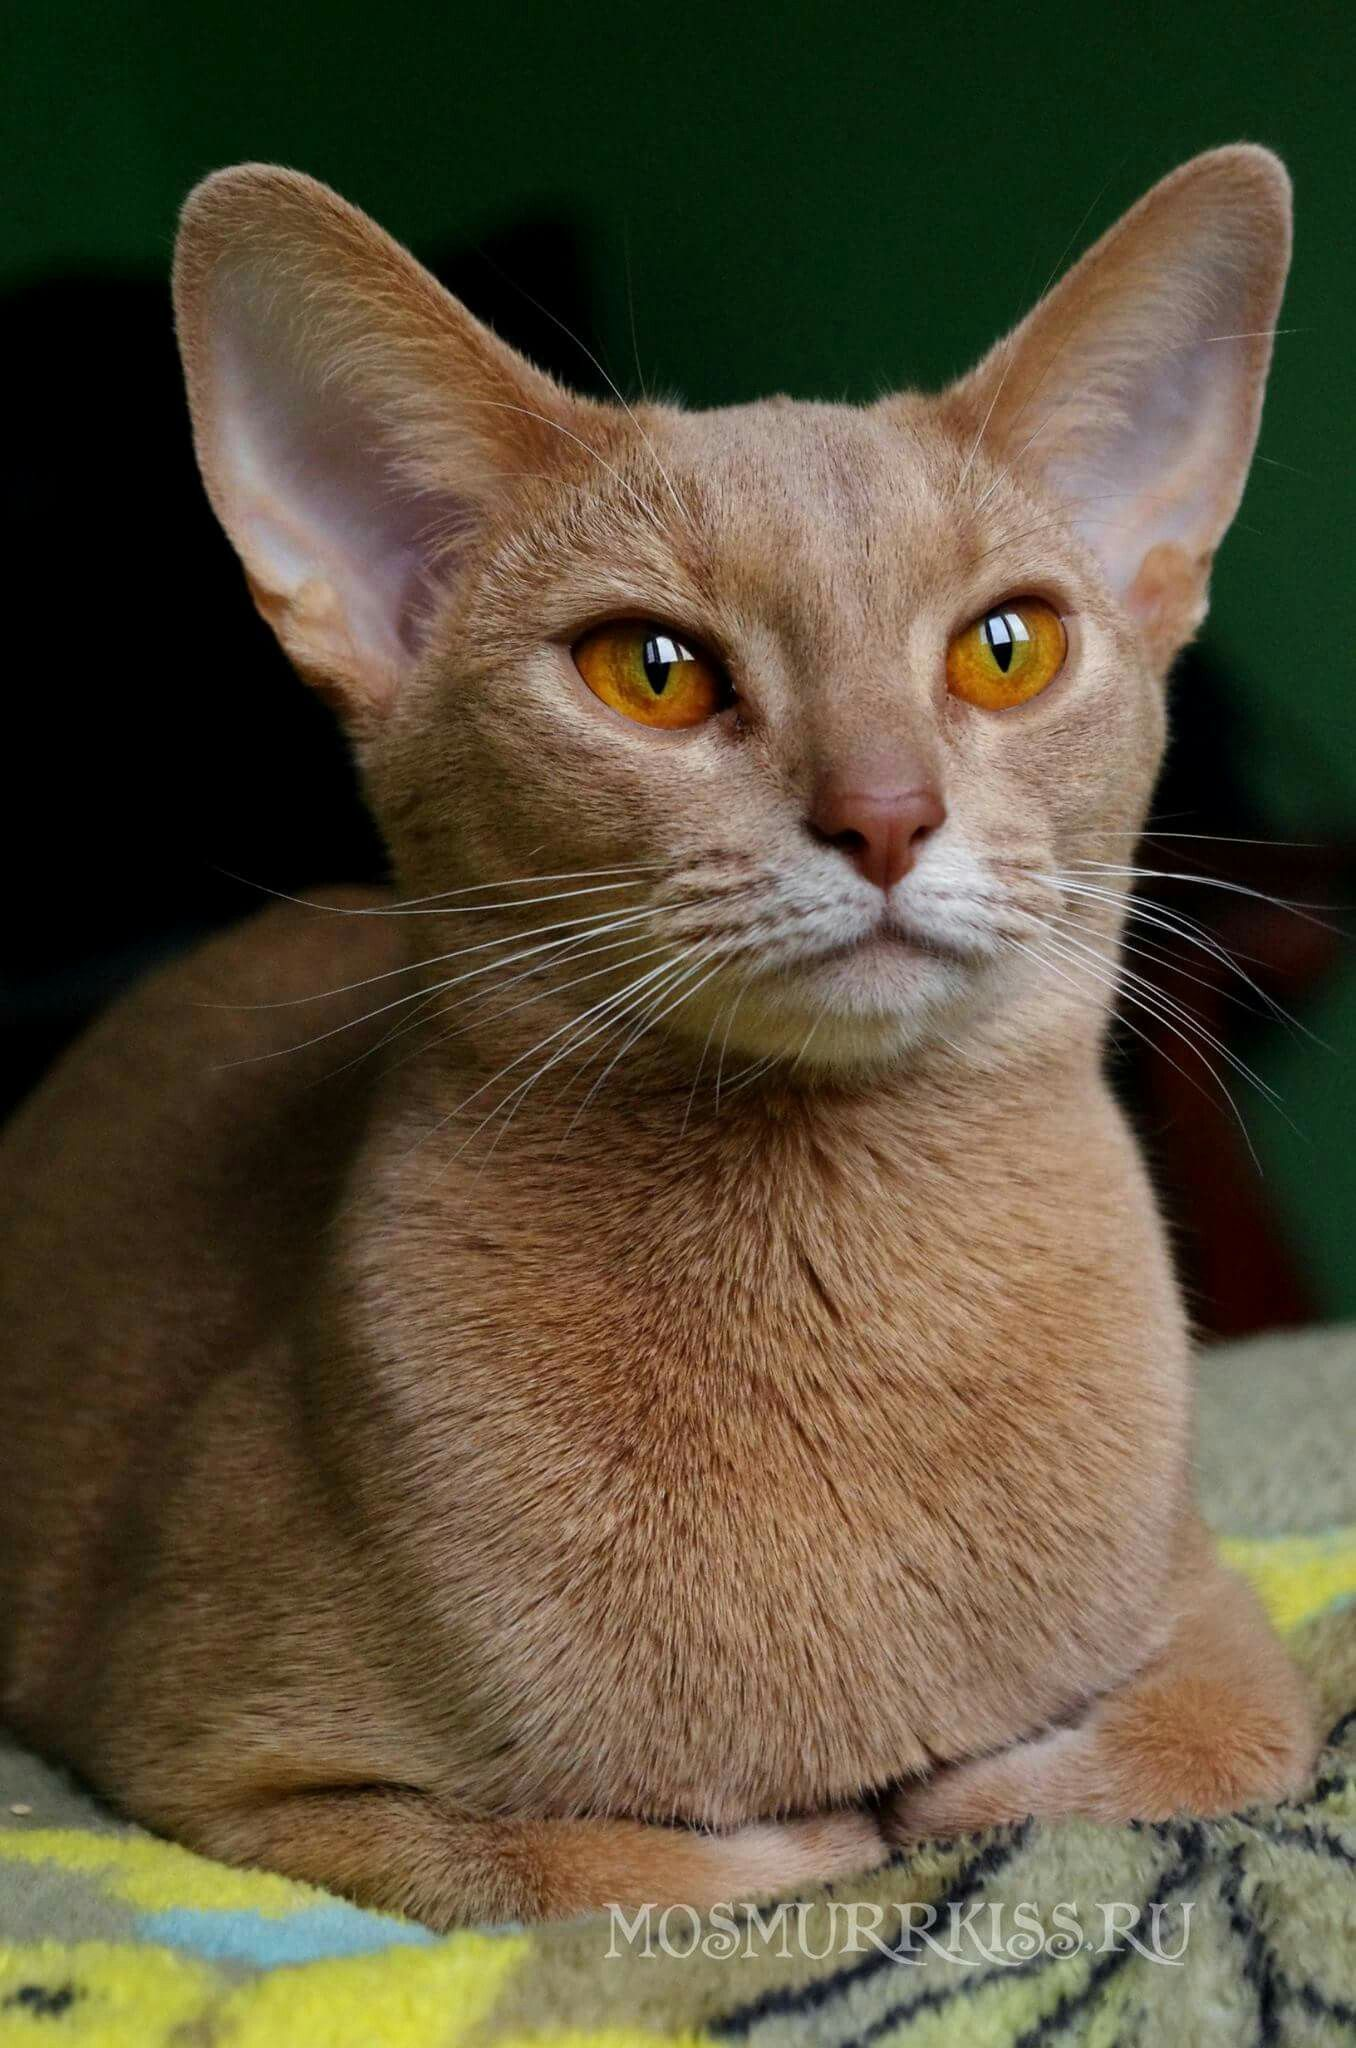 Fawn Abyssinian Catsbreedsthatdontshed Abyssinian Cats Cats And Kittens Cute Cats And Kittens